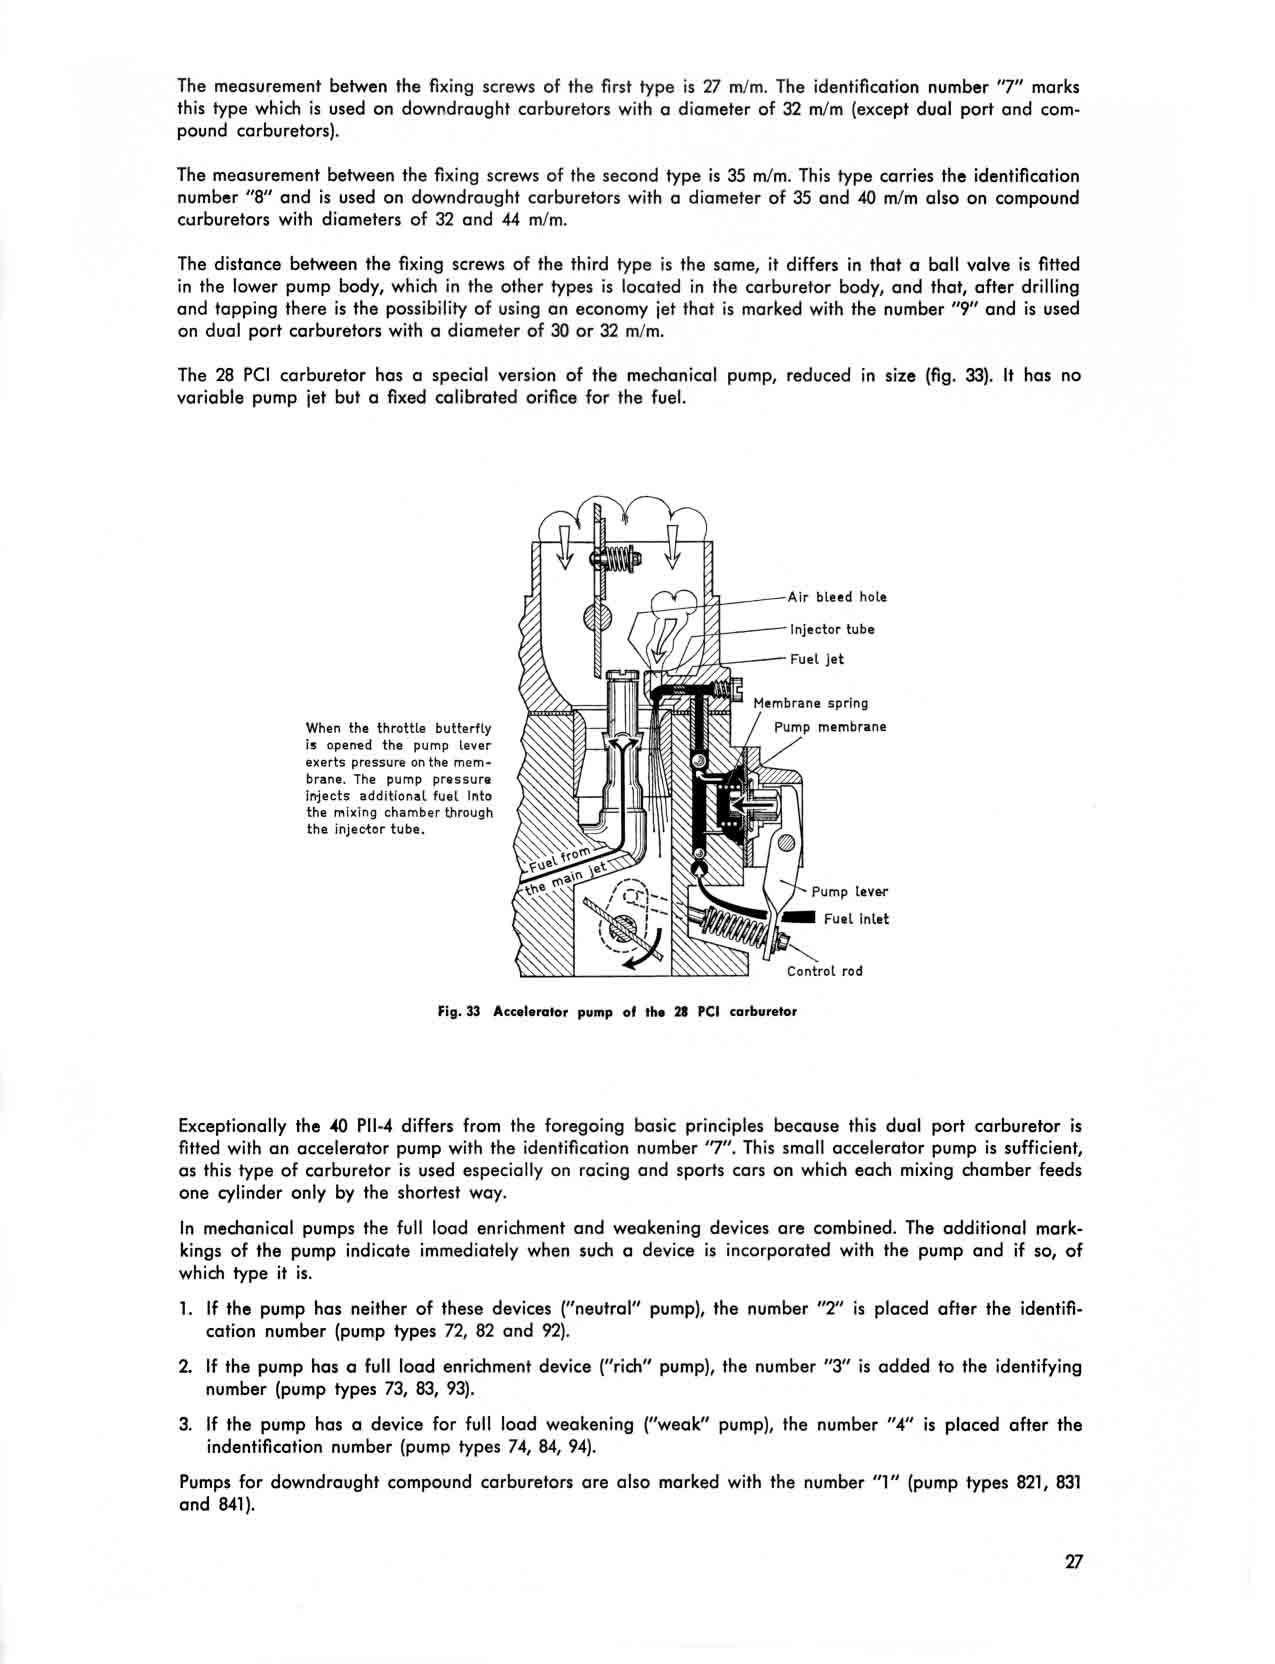 Obsolete Air-Cooled Documentation Project -- Solex-Selection and